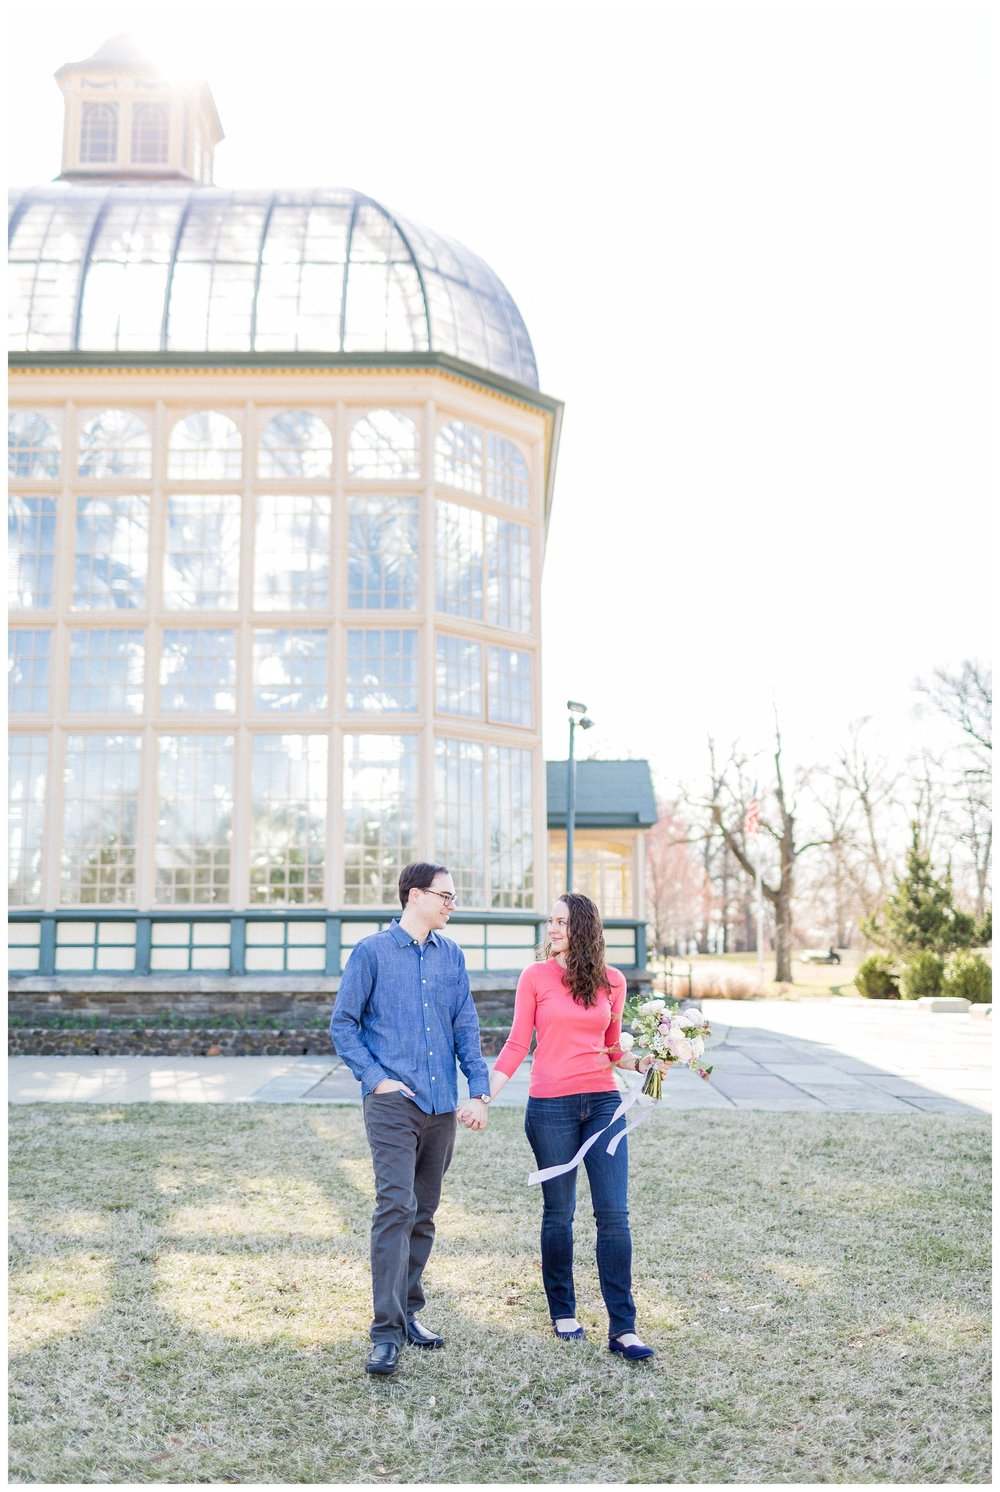 Baltimore Engagement Pictures | Maryland Wedding Photographer Kir Tuben_0021.jpg